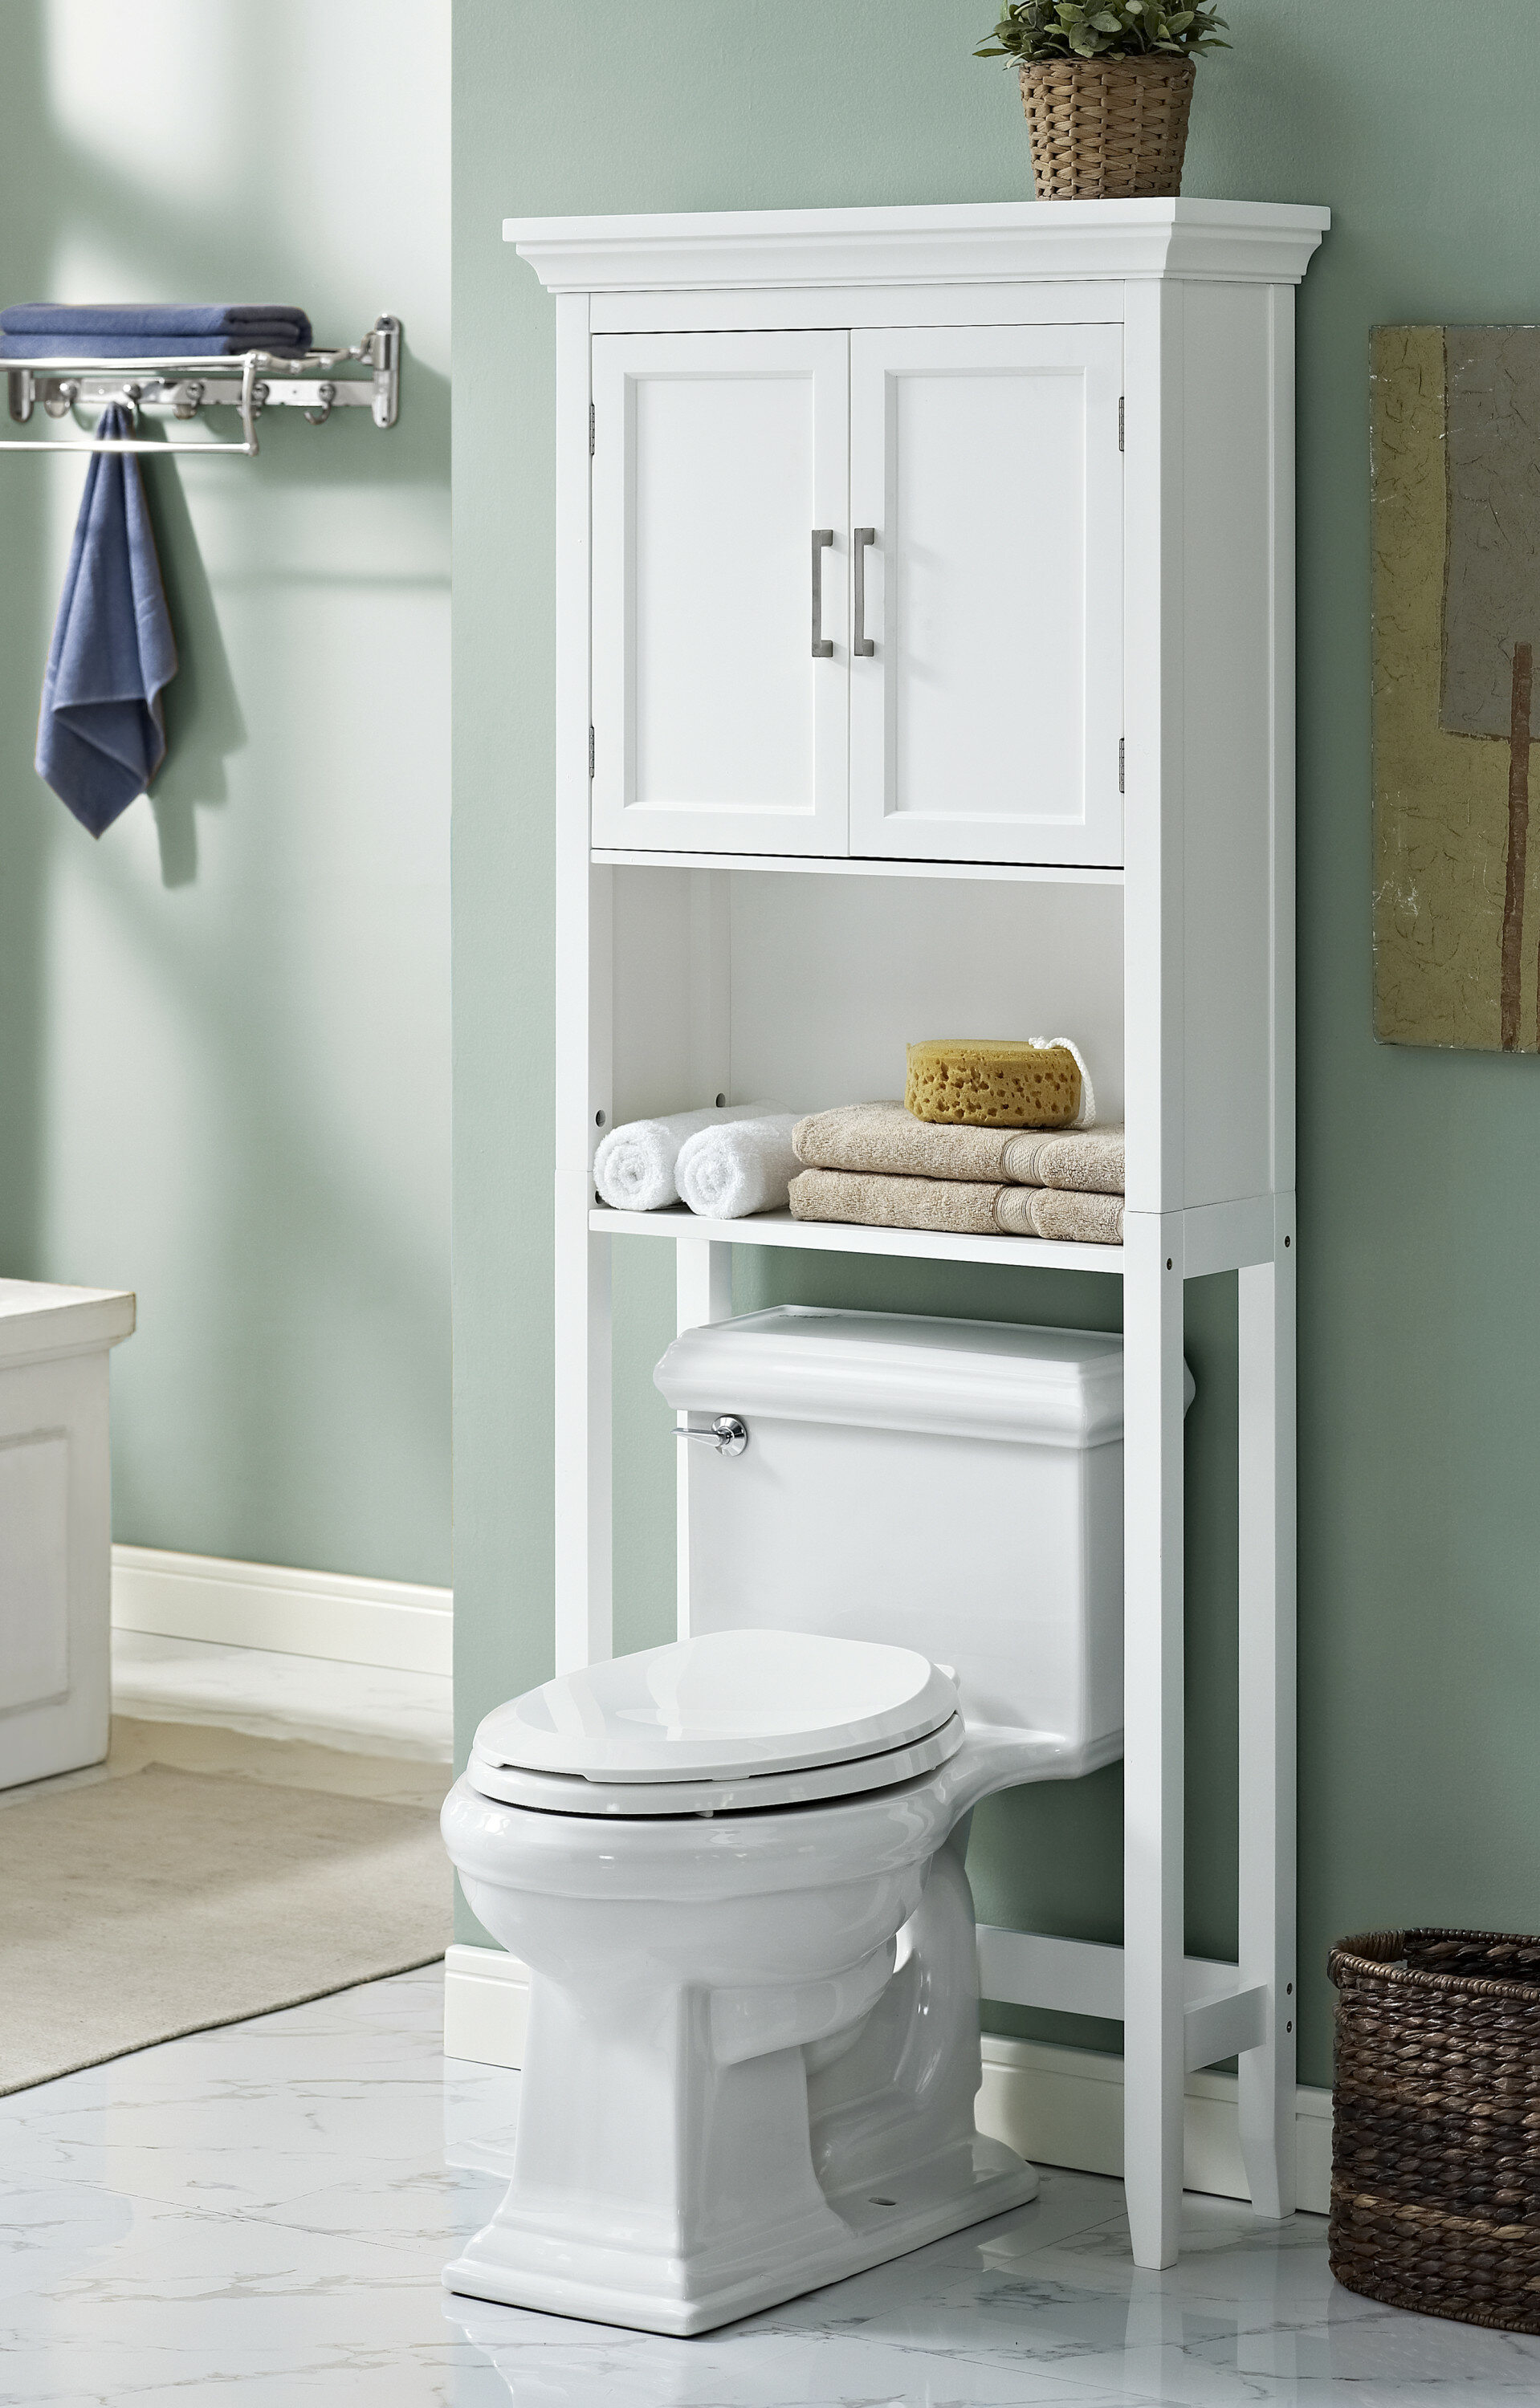 simpli home avington 27 w x 67 h over the toilet storage reviews wayfair. Black Bedroom Furniture Sets. Home Design Ideas